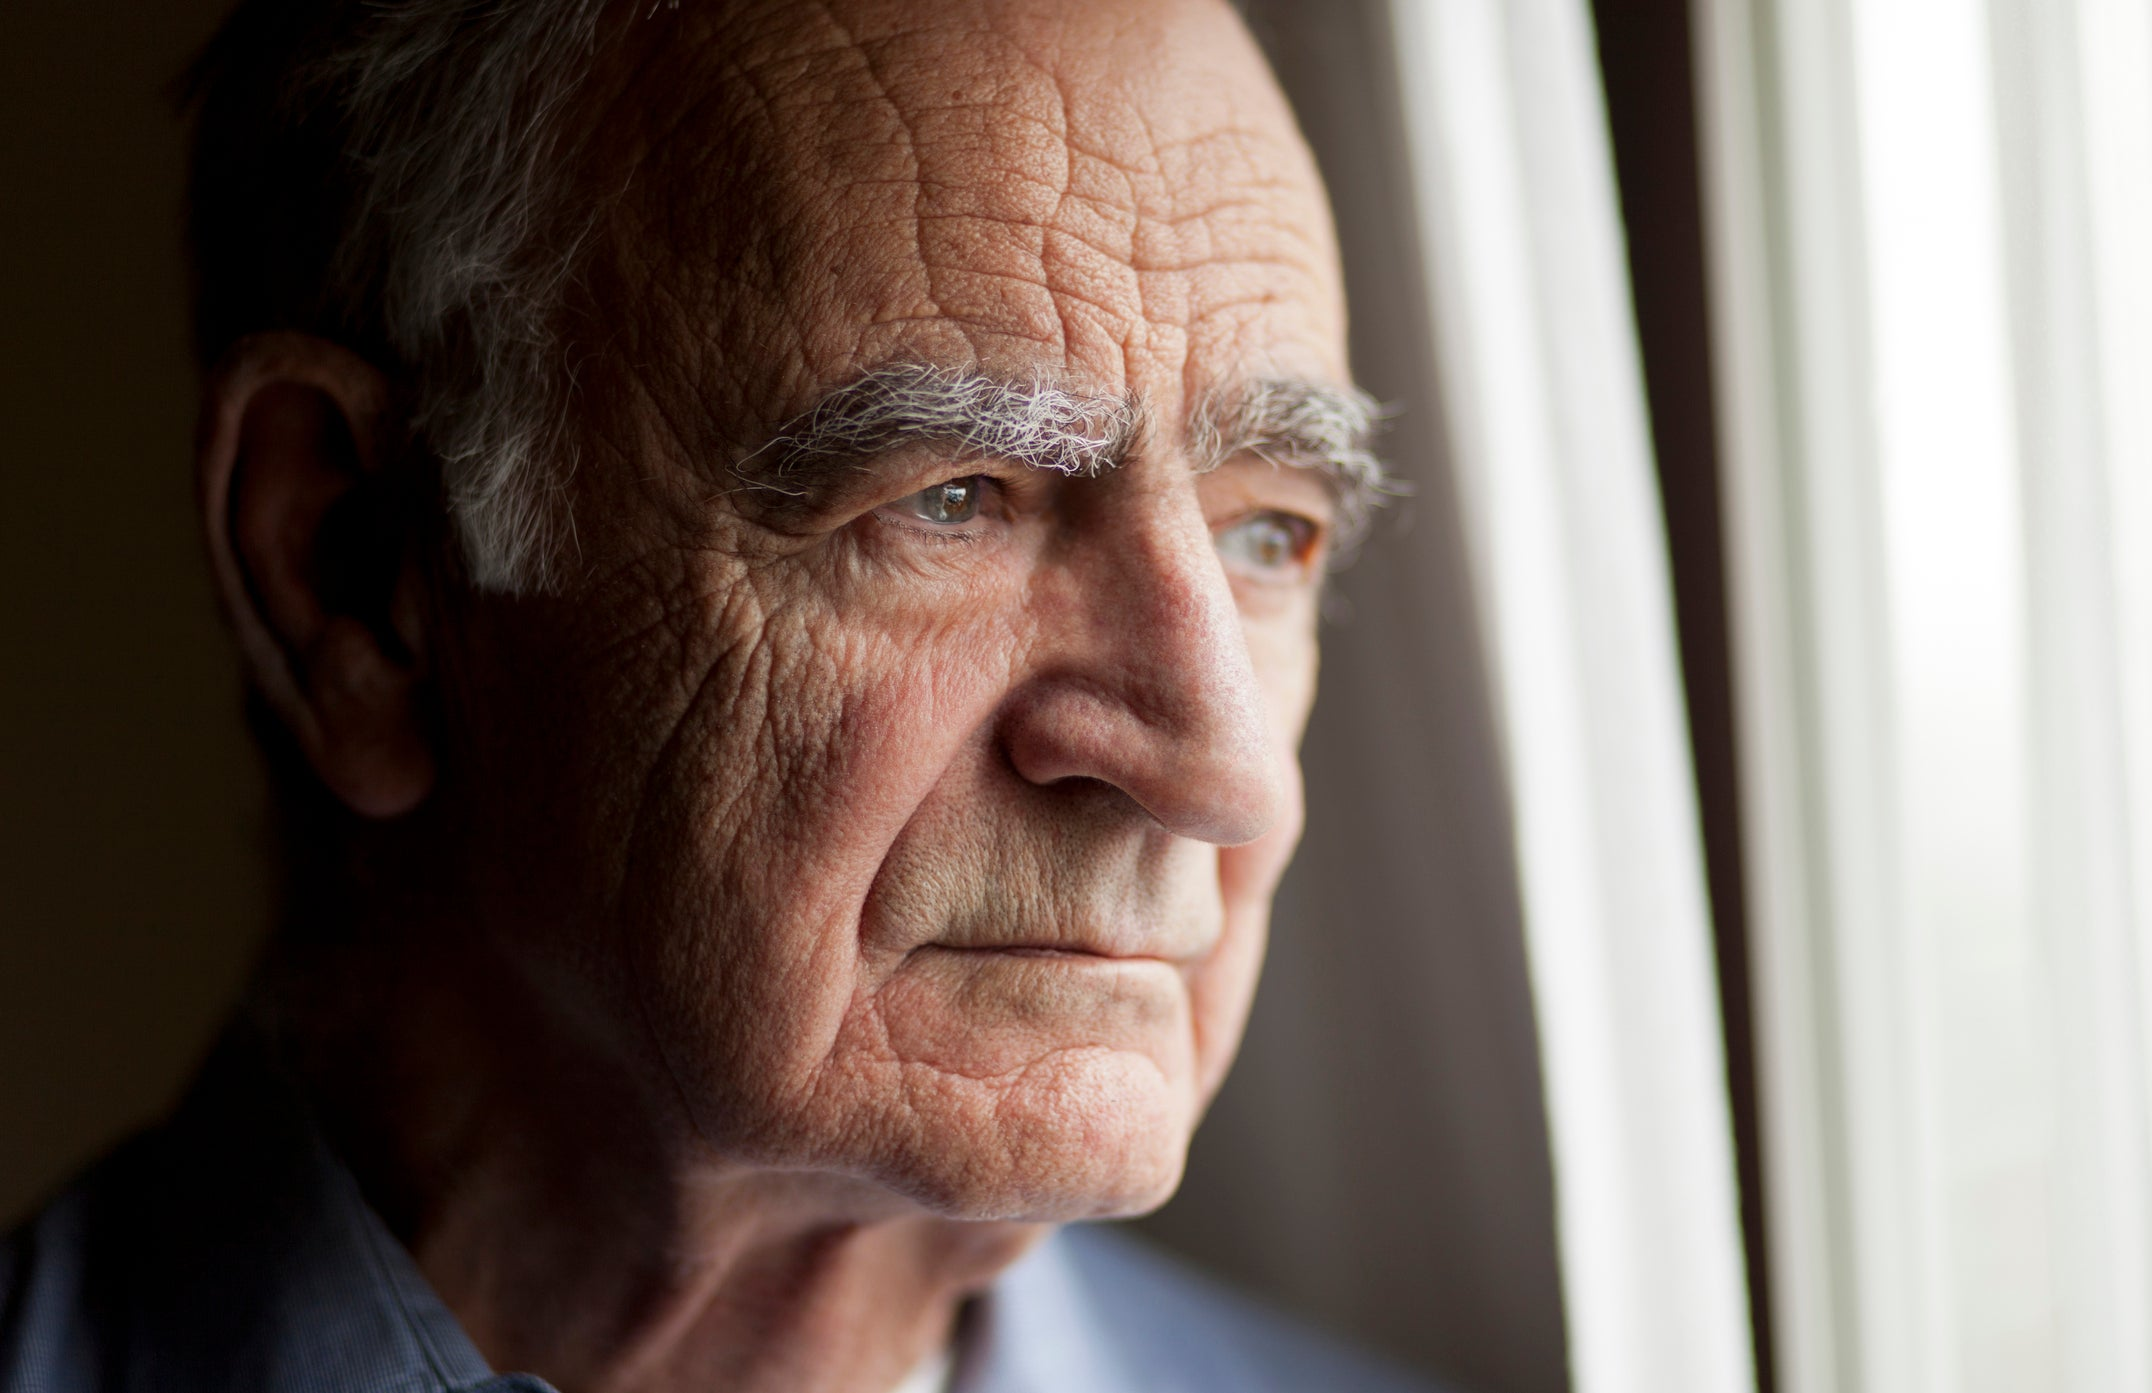 A senior citizen in deep thought as he stares out a window.